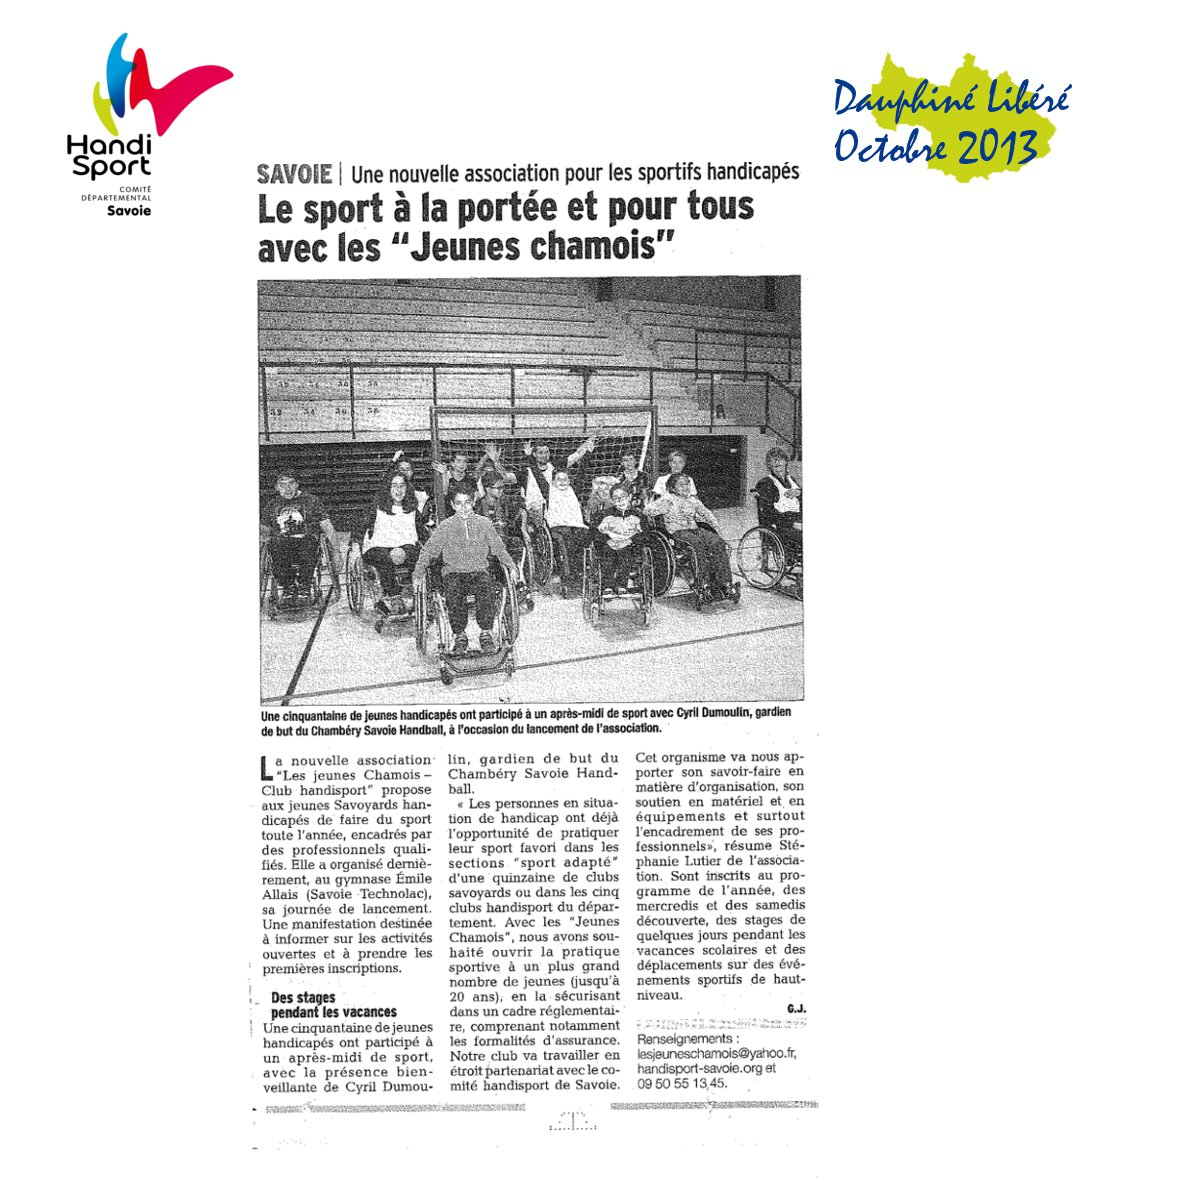 10.Article DL Octobre 2013